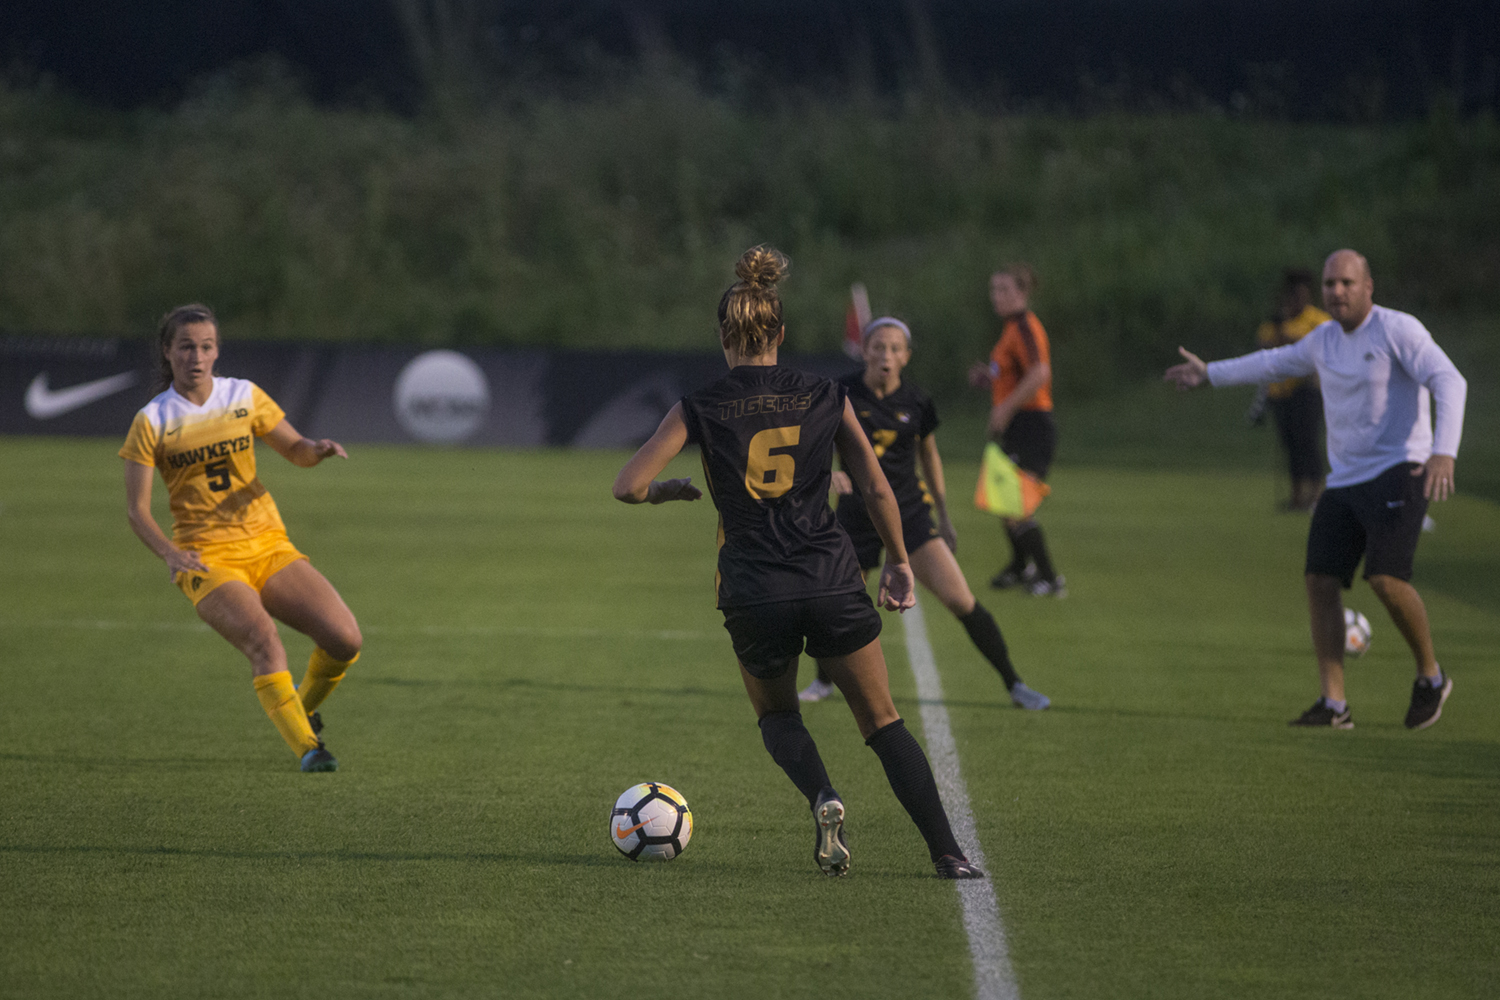 Iowa's Anna Frick navigate's the field during a soccer match between Iowa and Missouri at the Iowa Soccer Complex on Friday, Aug. 17, 2018. The Hawkeyes drew the Tigers, 0-0.